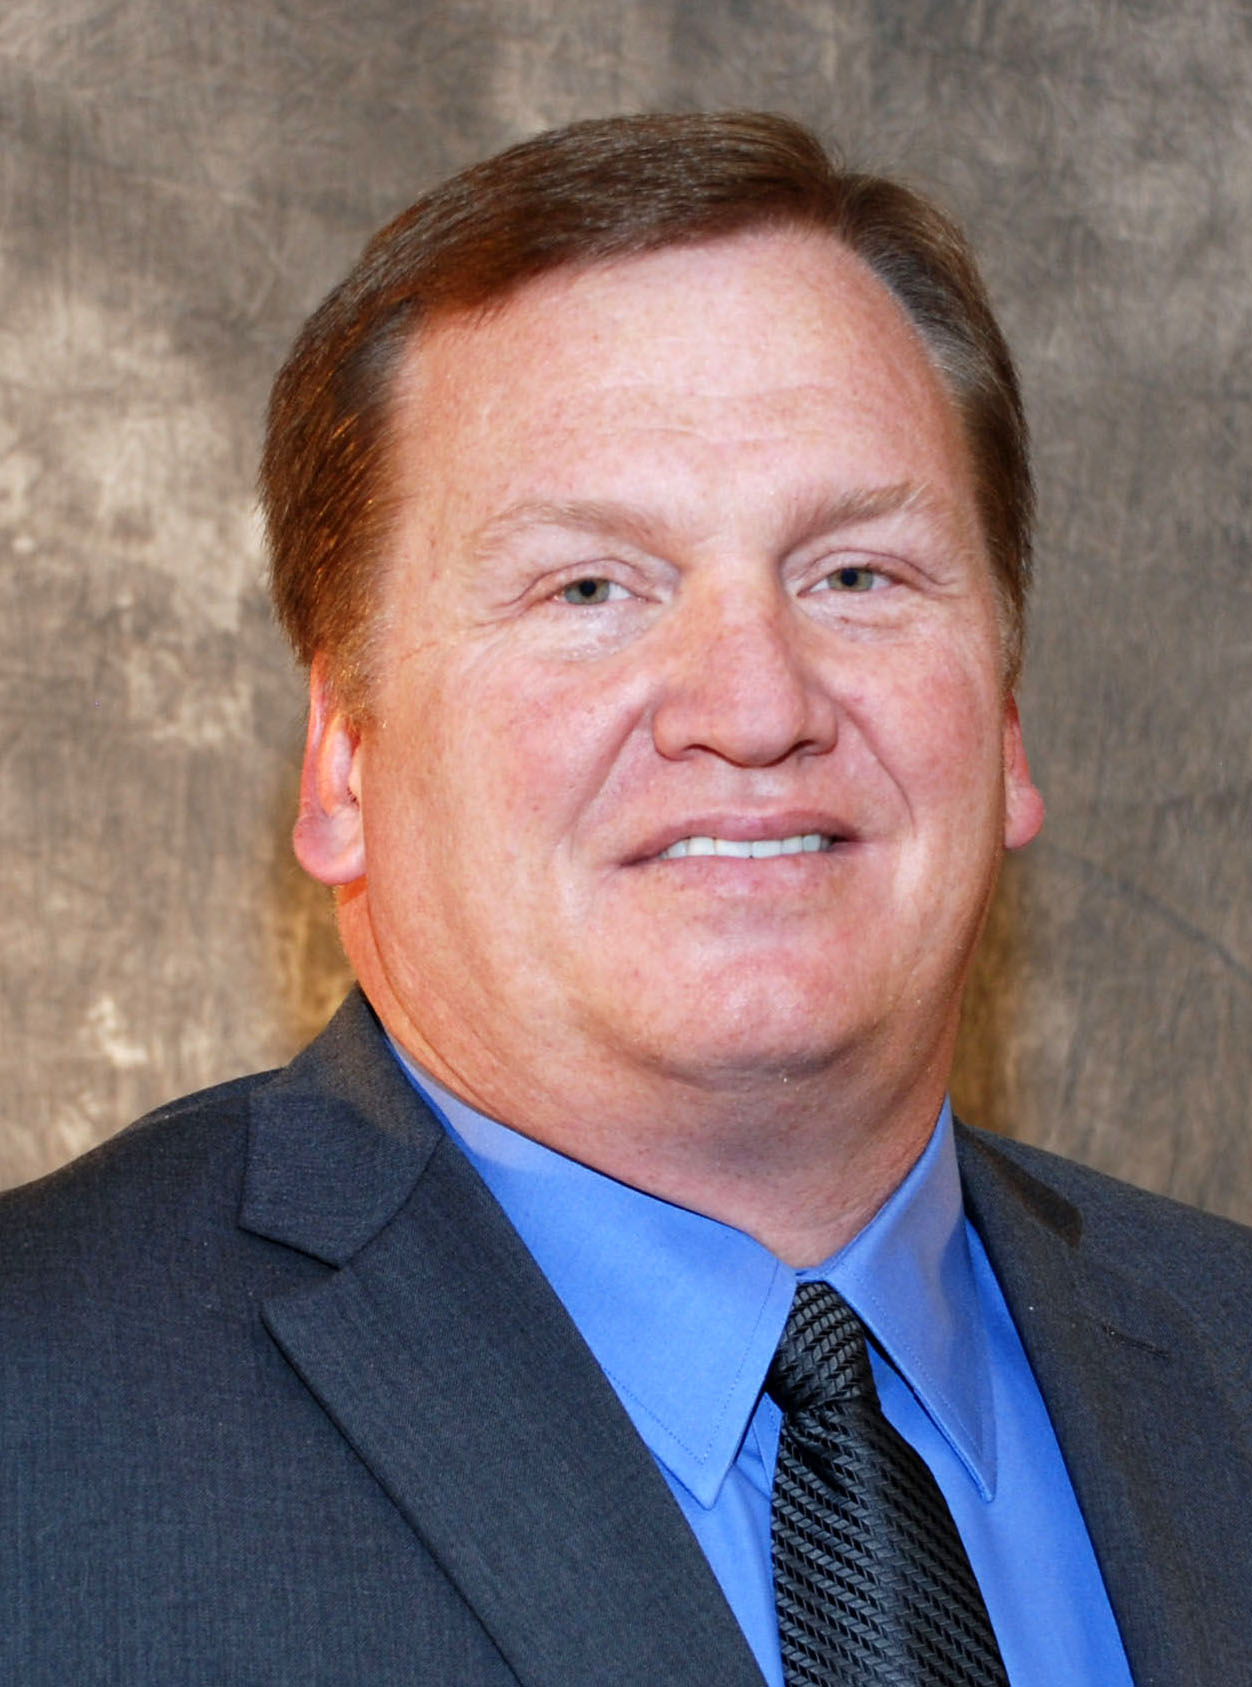 Letcher County Board of Education begins search for new Superintendent